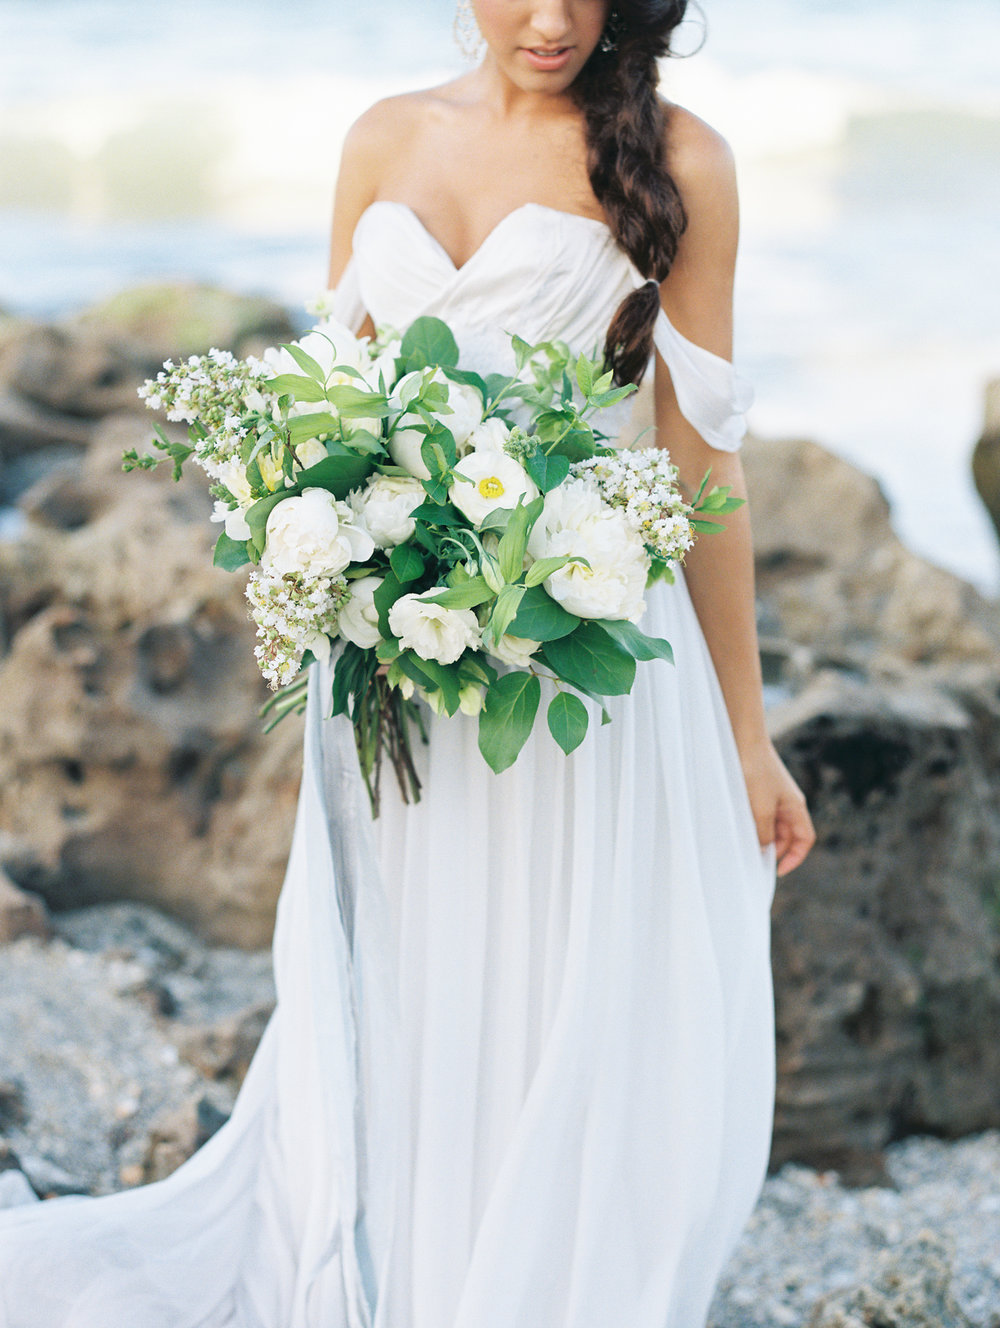 coral cove, jupiter beach FL, palm beach wedding photos, bride with bouquet and wedding dress gown